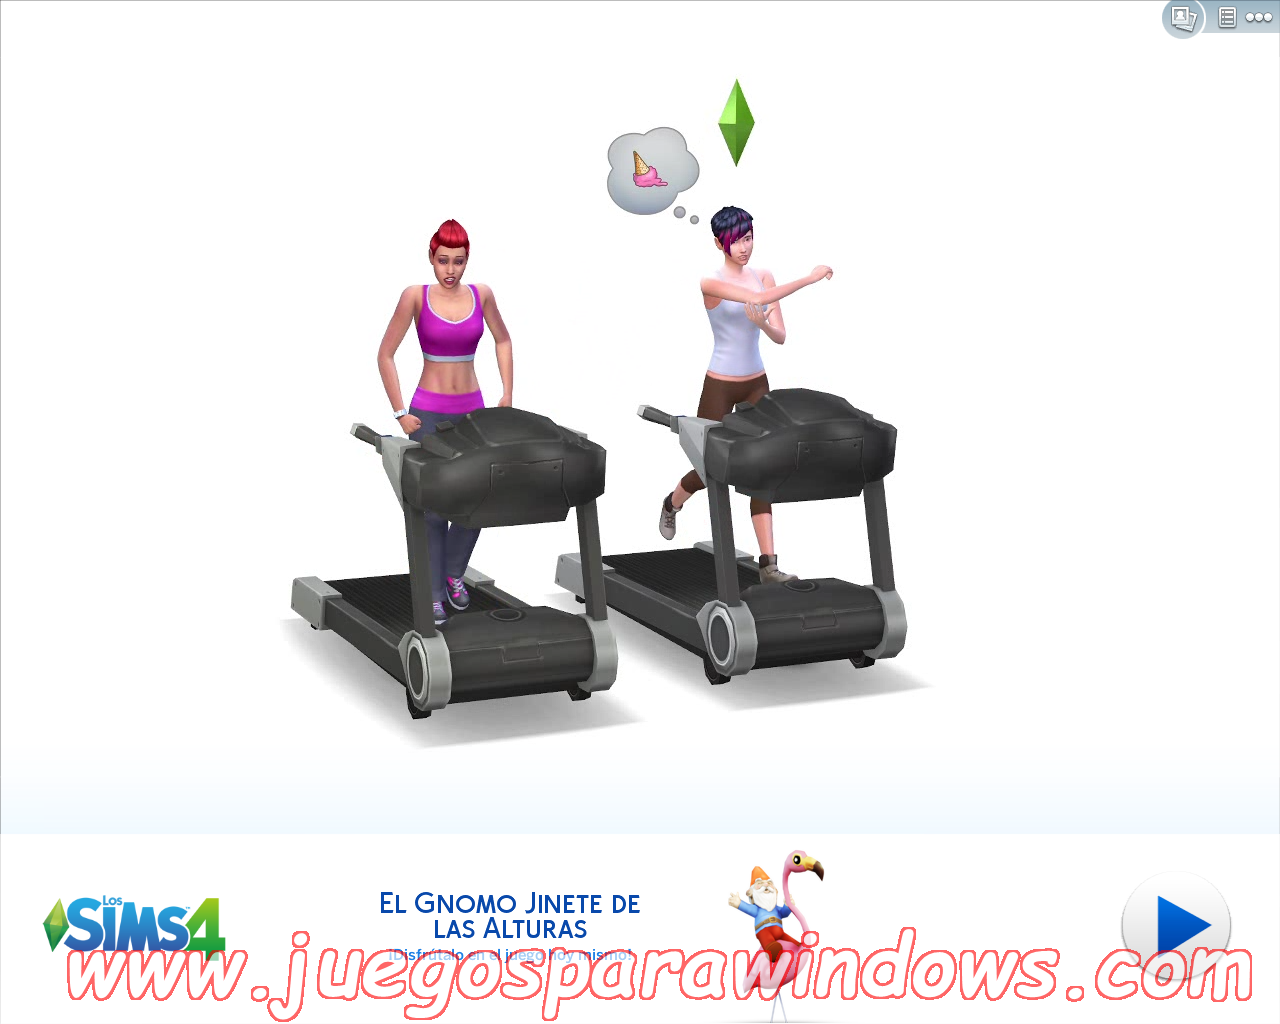 Los Sims 4 Digital Deluxe Edition ESPAÑOL PC Full + Update v1.4.83.1010 Incl DLC (RELOADED) 9